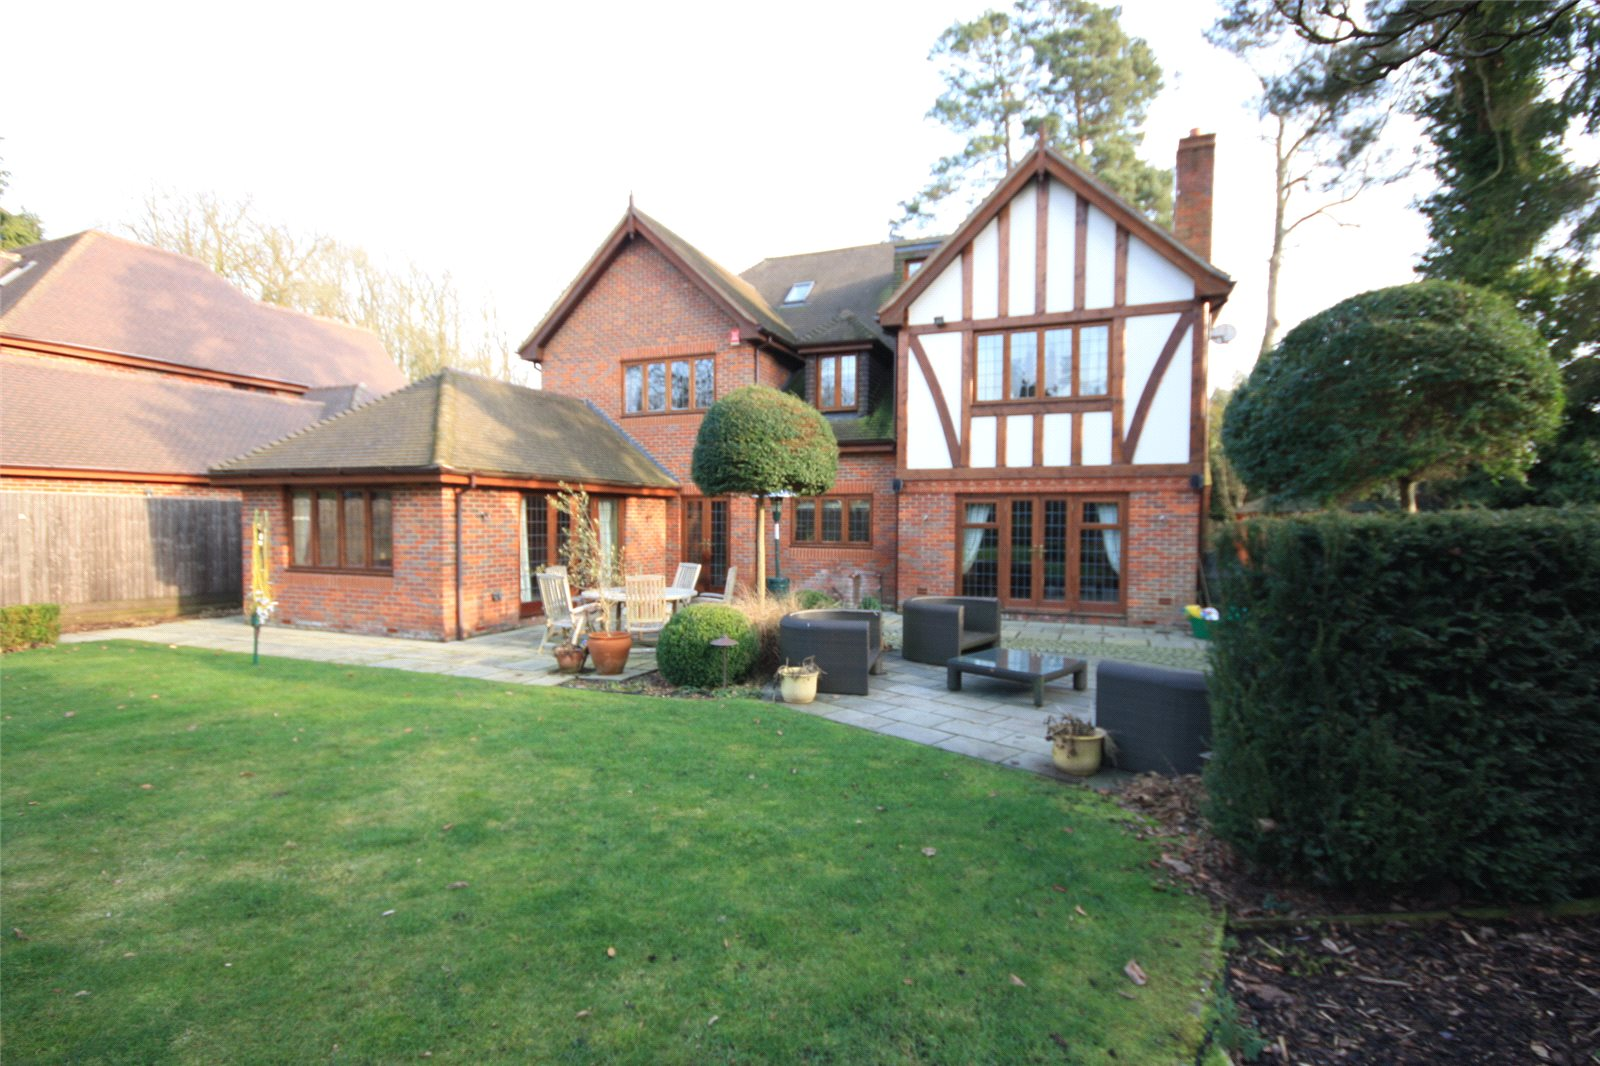 Additional photo for property listing at Deadhearn Lane, Chalfont St Giles, Buckinghamshire, HP8 Chalfont St Giles, 영국